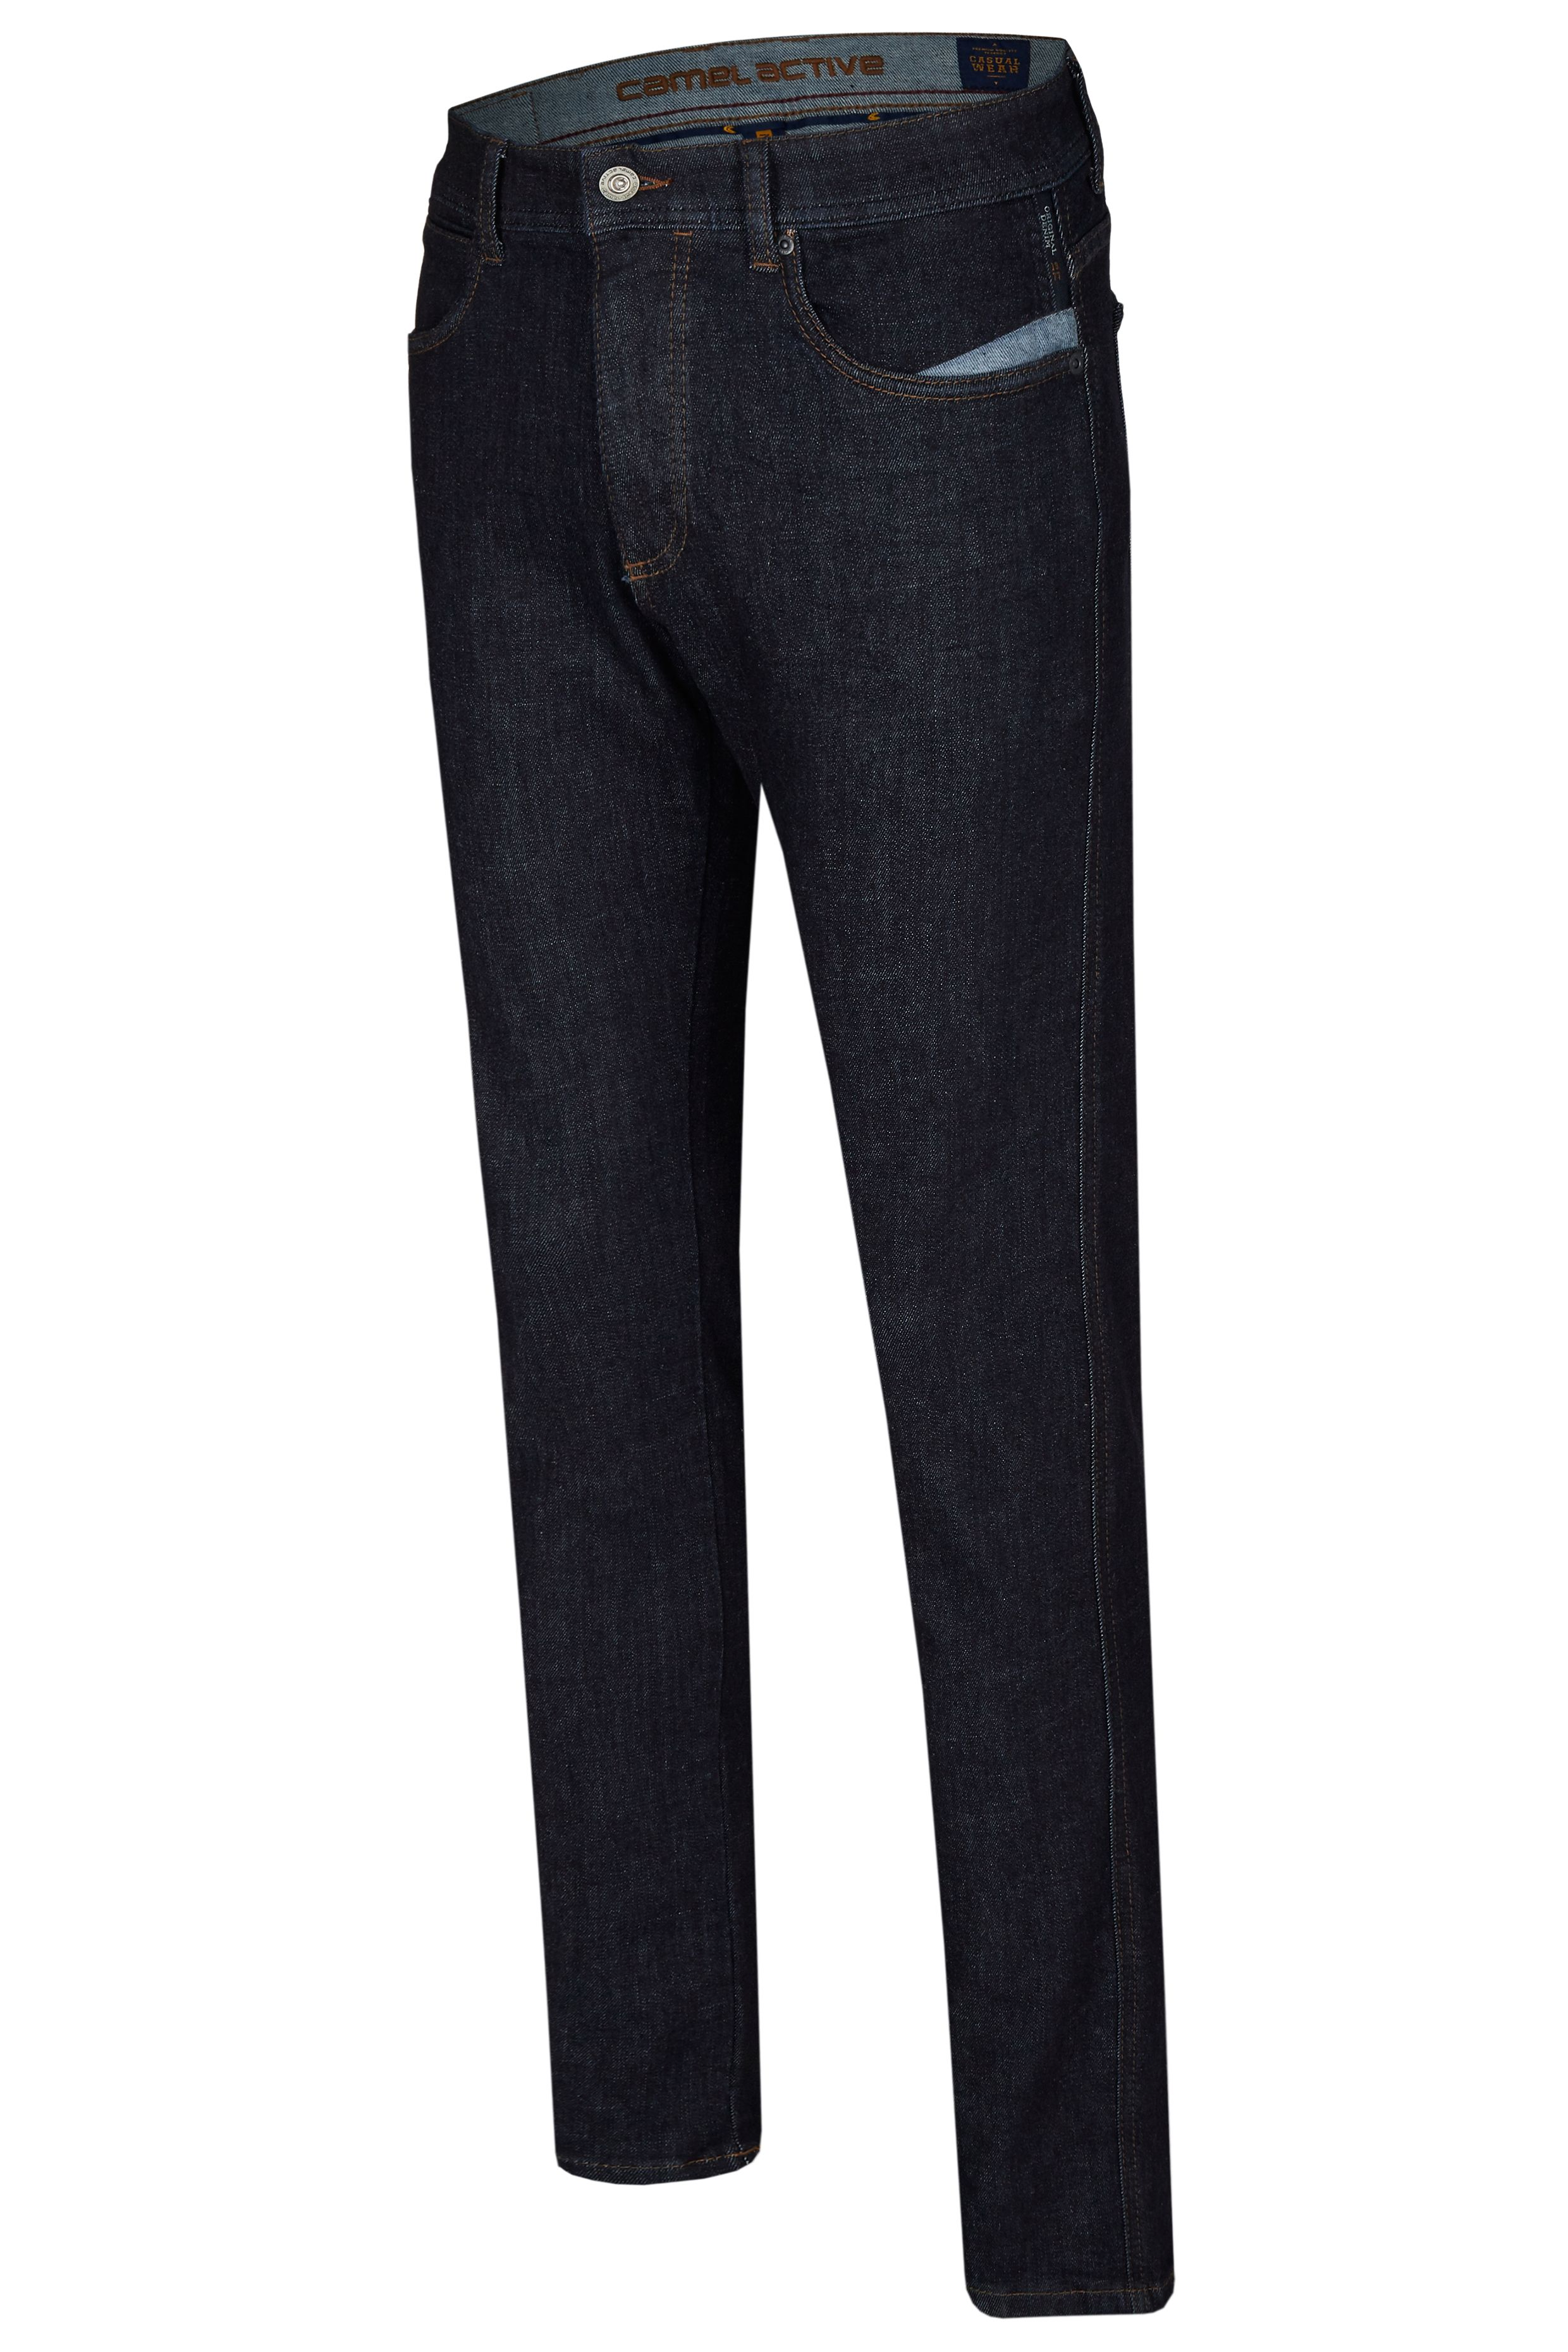 CAMEL ACTIVE Jeans Slim Fit MADISON dark rinsed